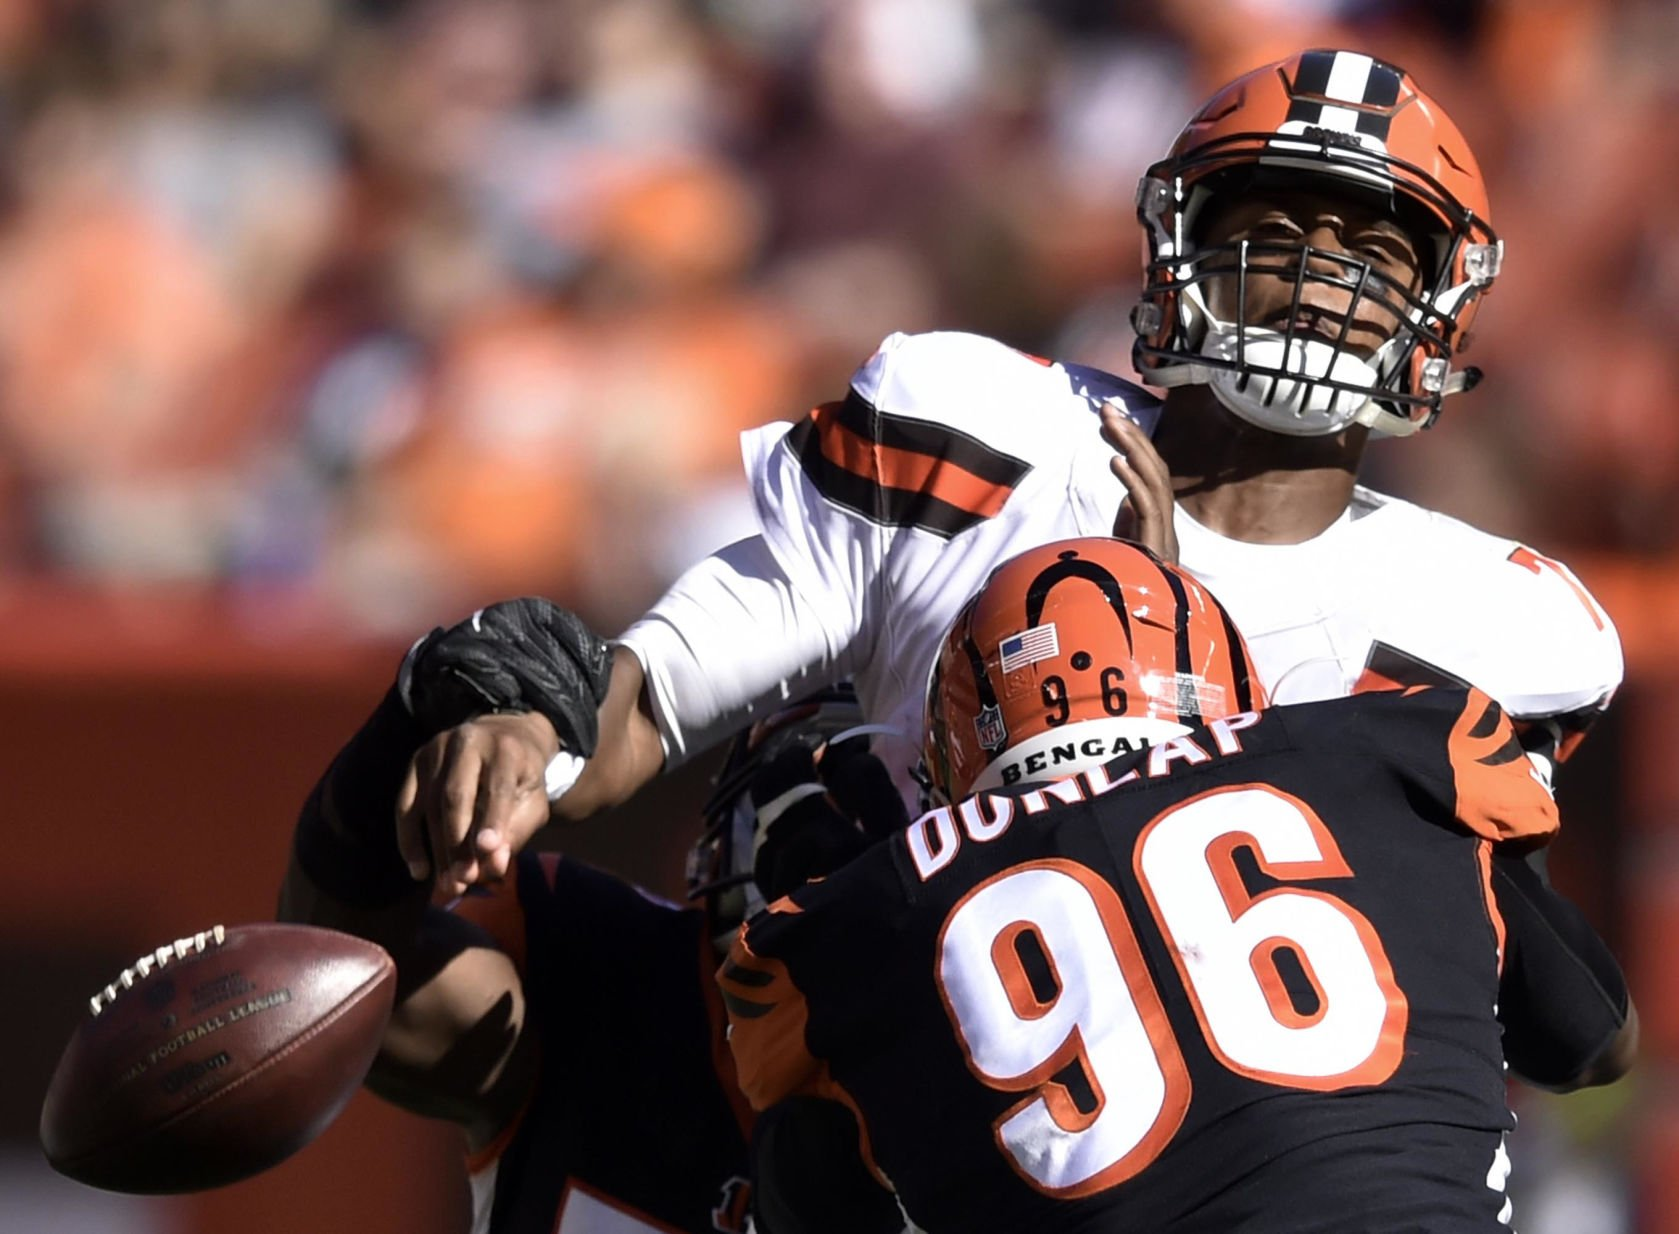 Myles Garrett will play in Week 5 against the Jets